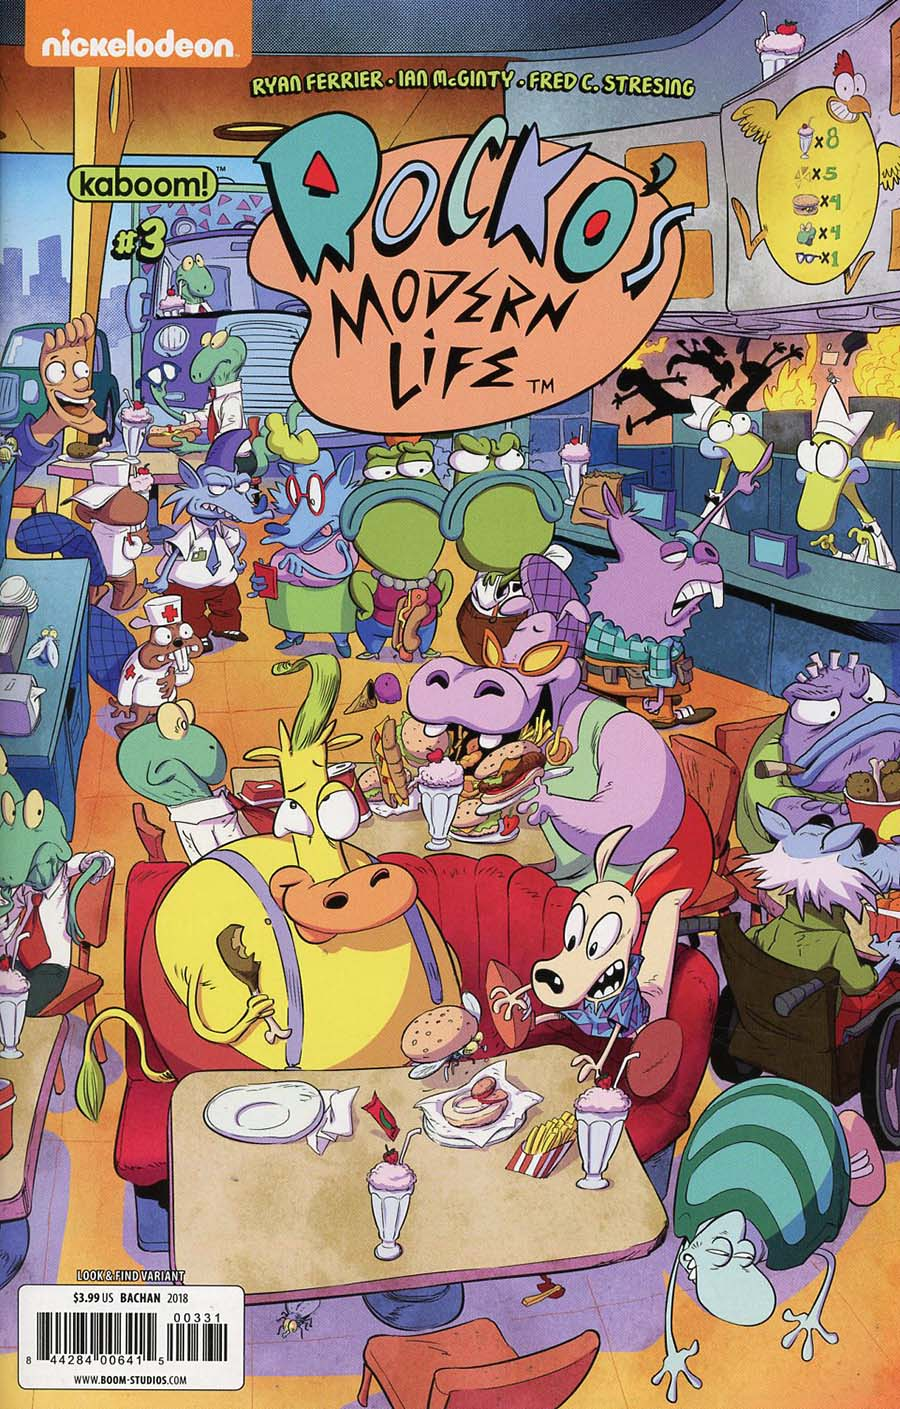 Rockos Modern Life Vol 2 #3 Cover C Variant Bachan Cover